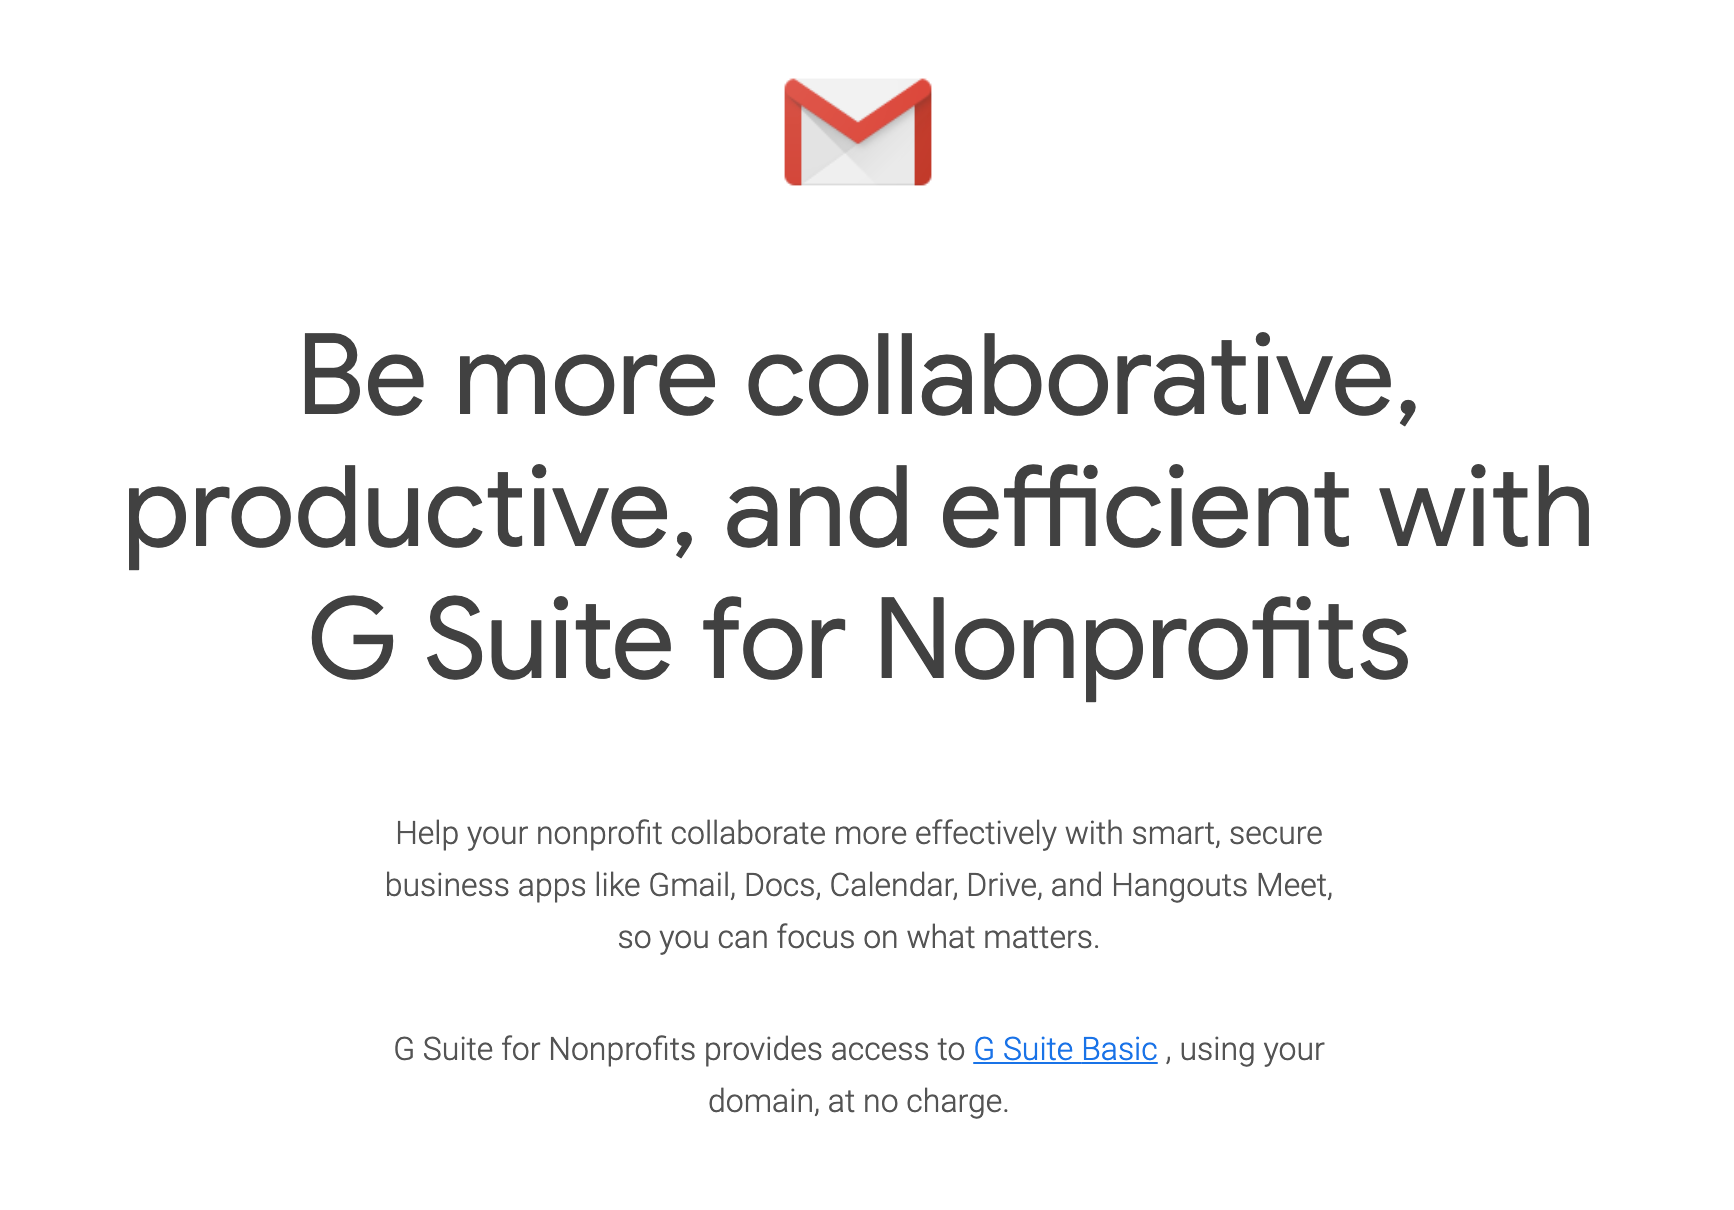 G_Suite__Nonprofit_Resource_Center_–_Google_for_Nonprofits.png